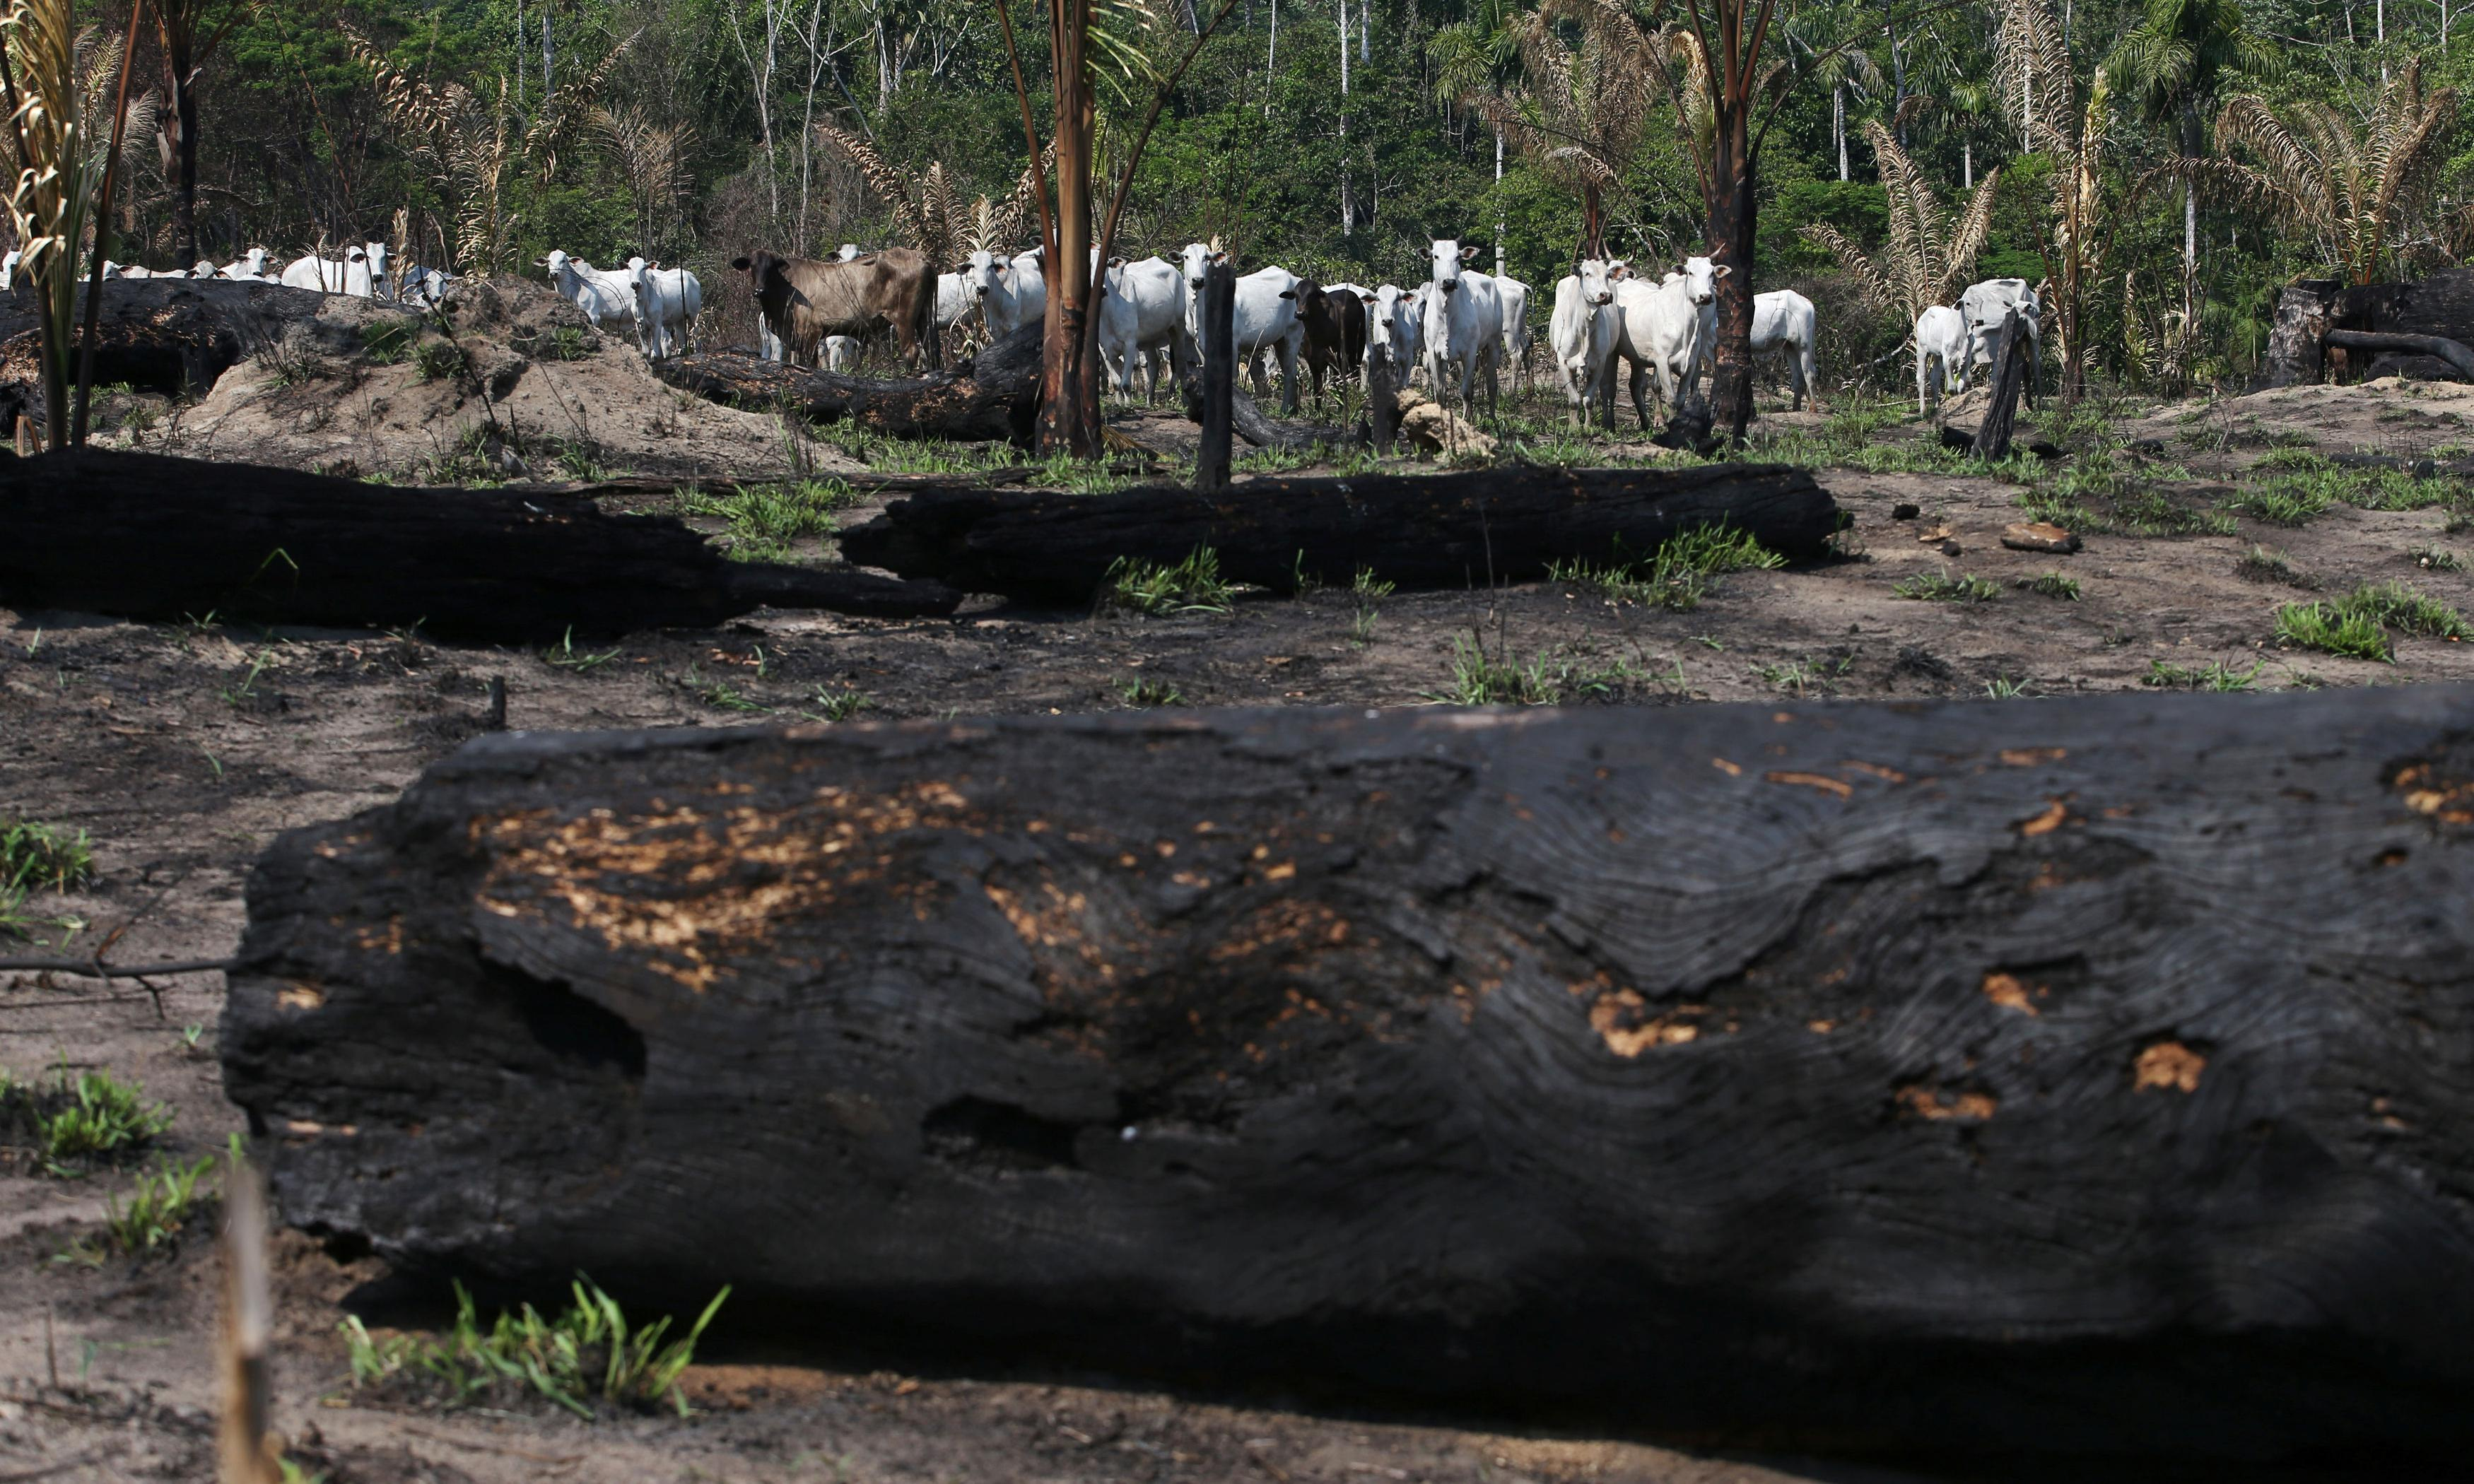 Don't invest in Brazilian meat, warn deforestation campaigners